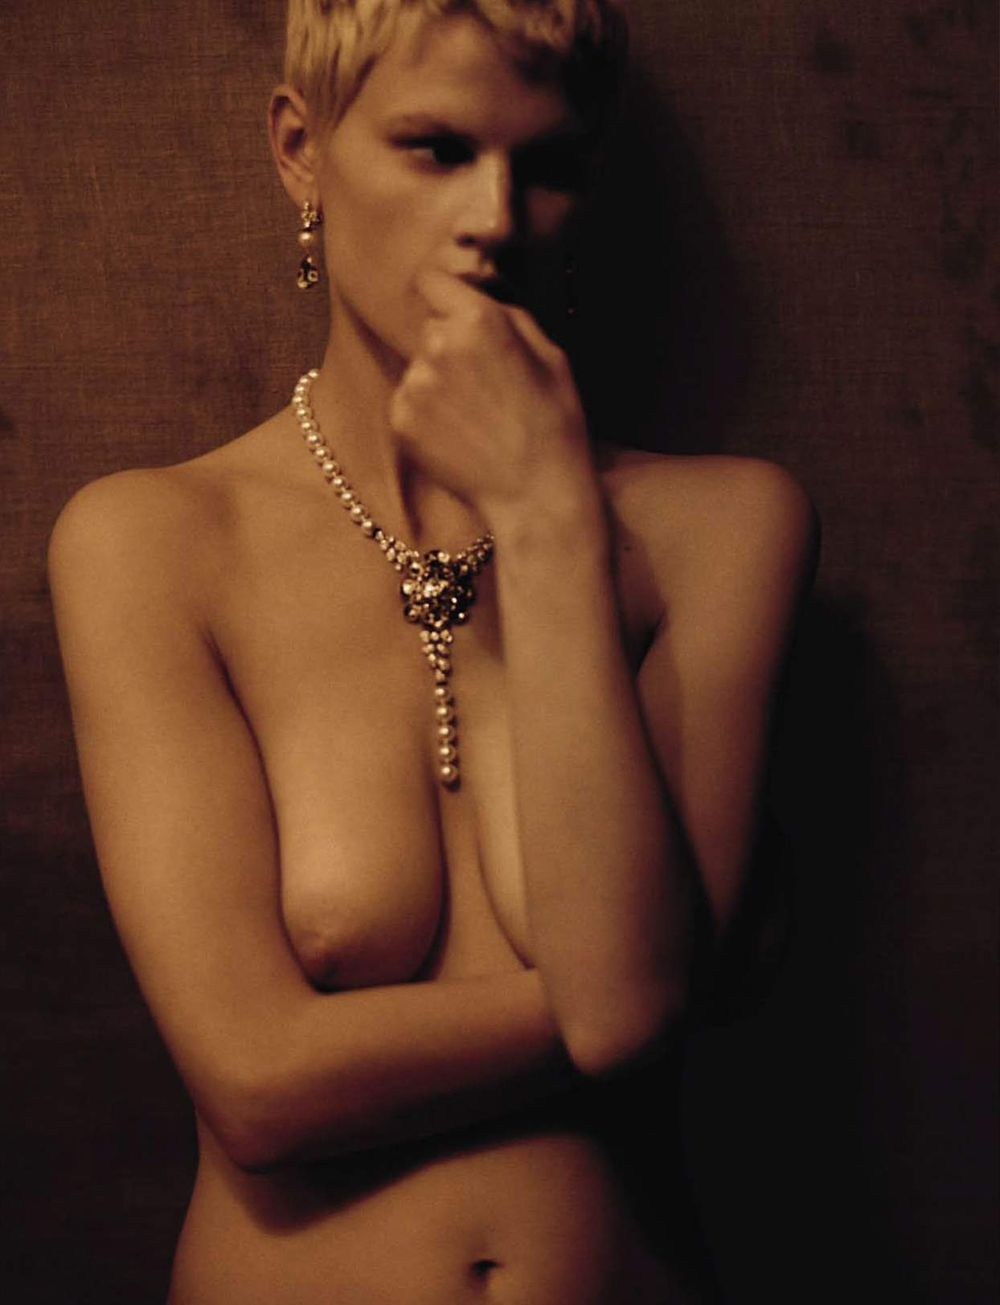 naked (55 photo), Topless Celebrity pics